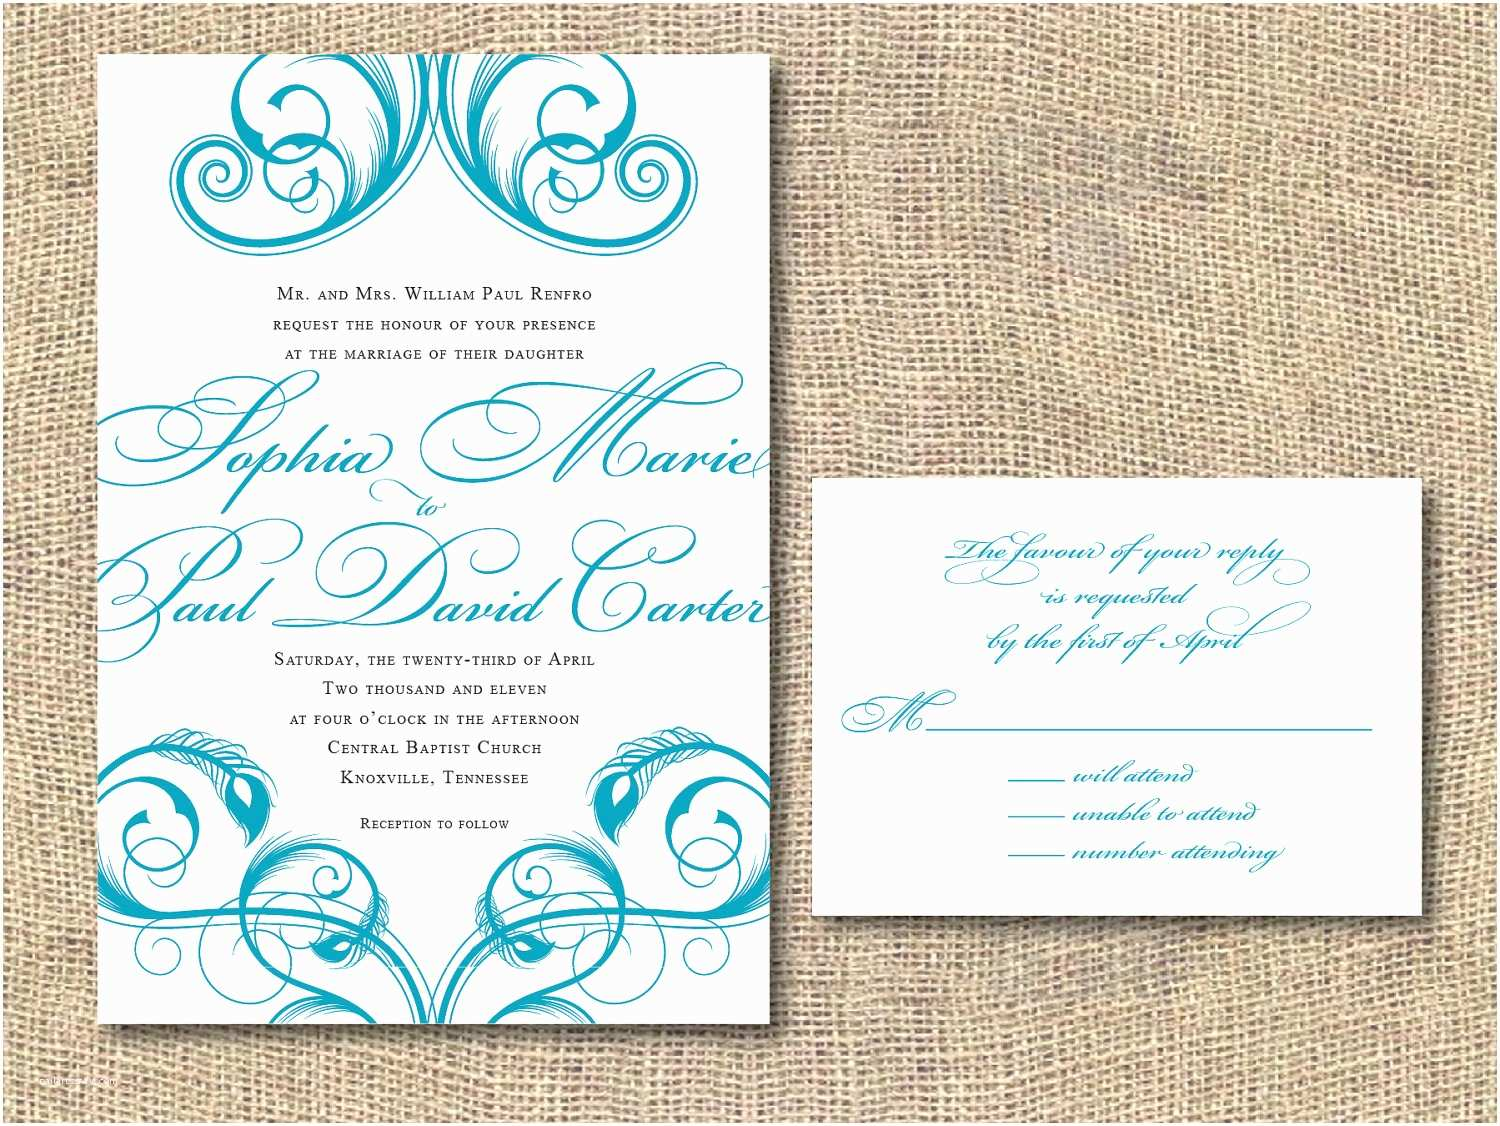 Wedding Invitations To Print At Home For Free Printable Wedding Invitations White With Blue